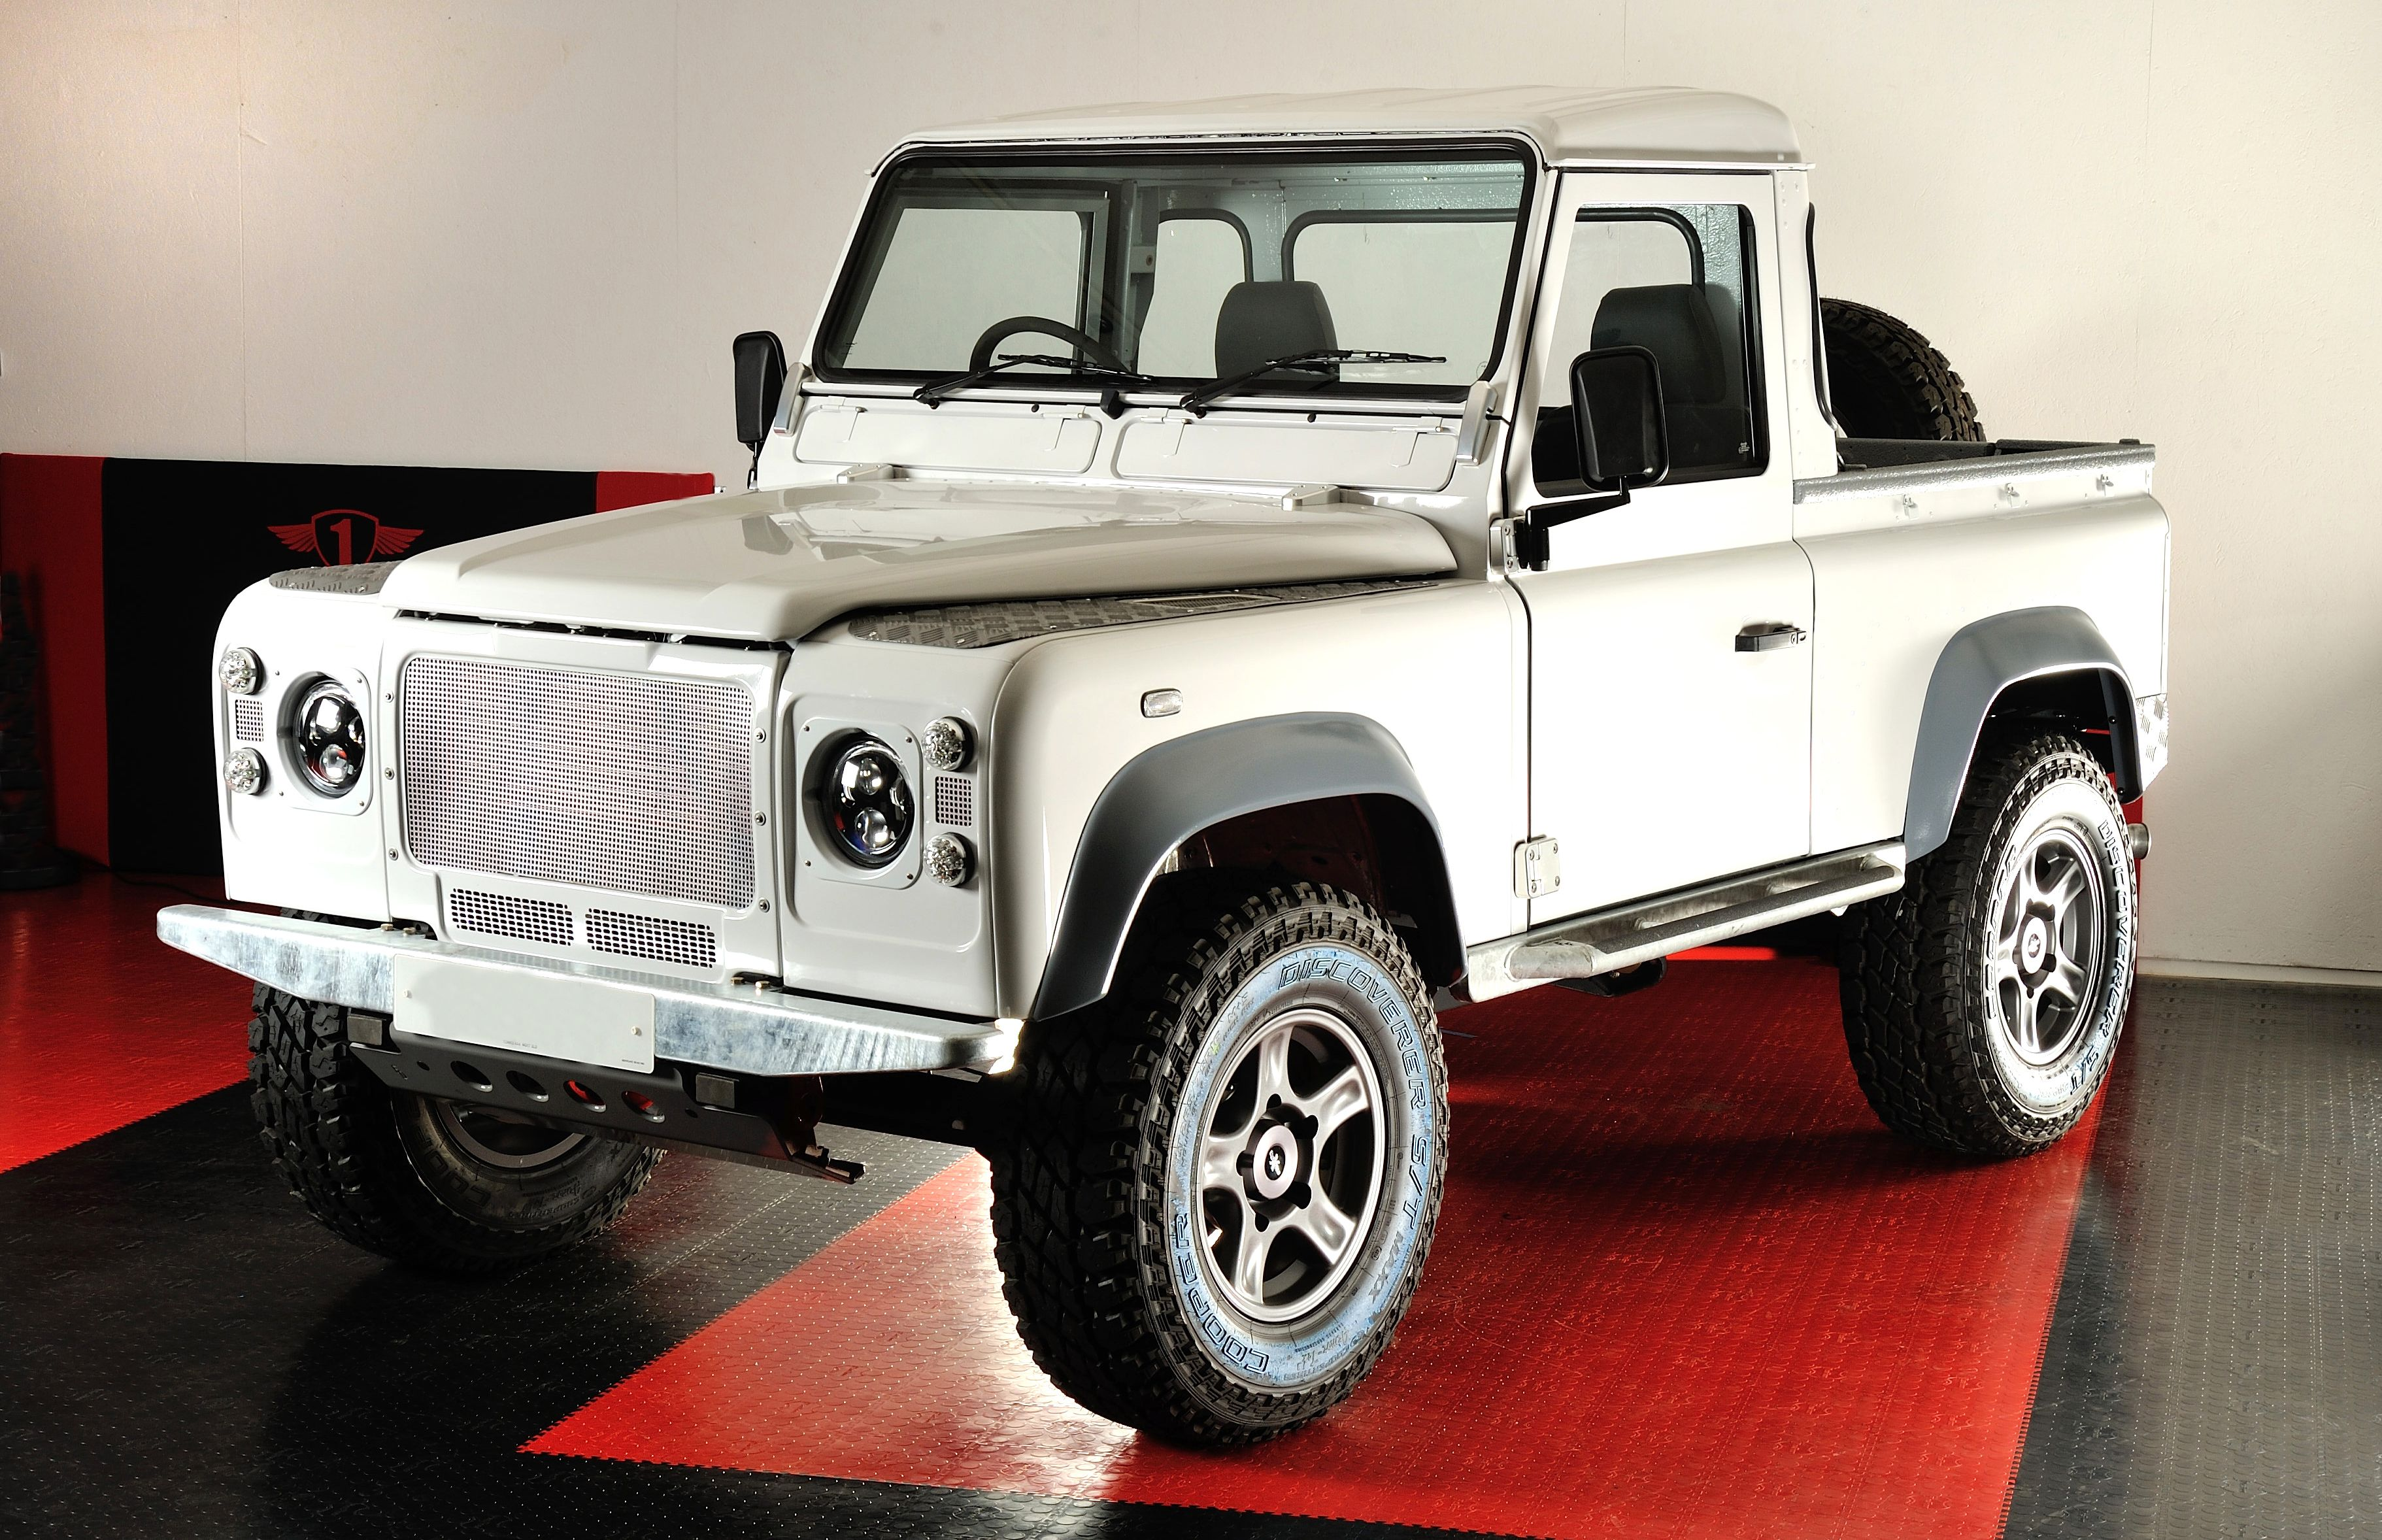 the landrovers landrover rover refurbished trophy rc sale pin land crawler defenders tamiya camel for